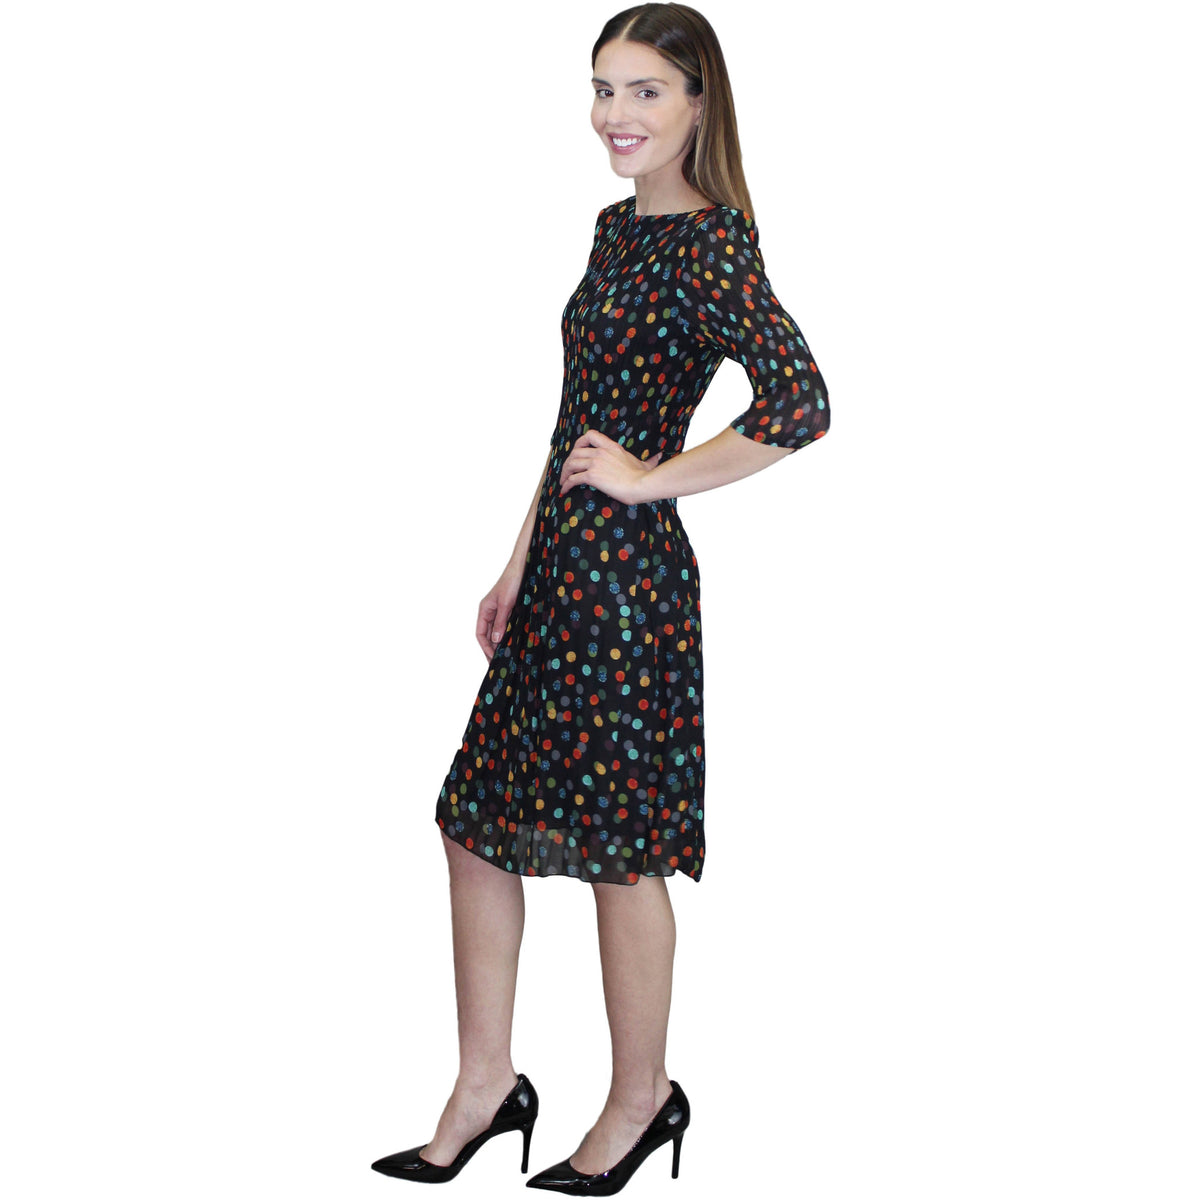 3/4 Sleeve Dot Print Dress - Black